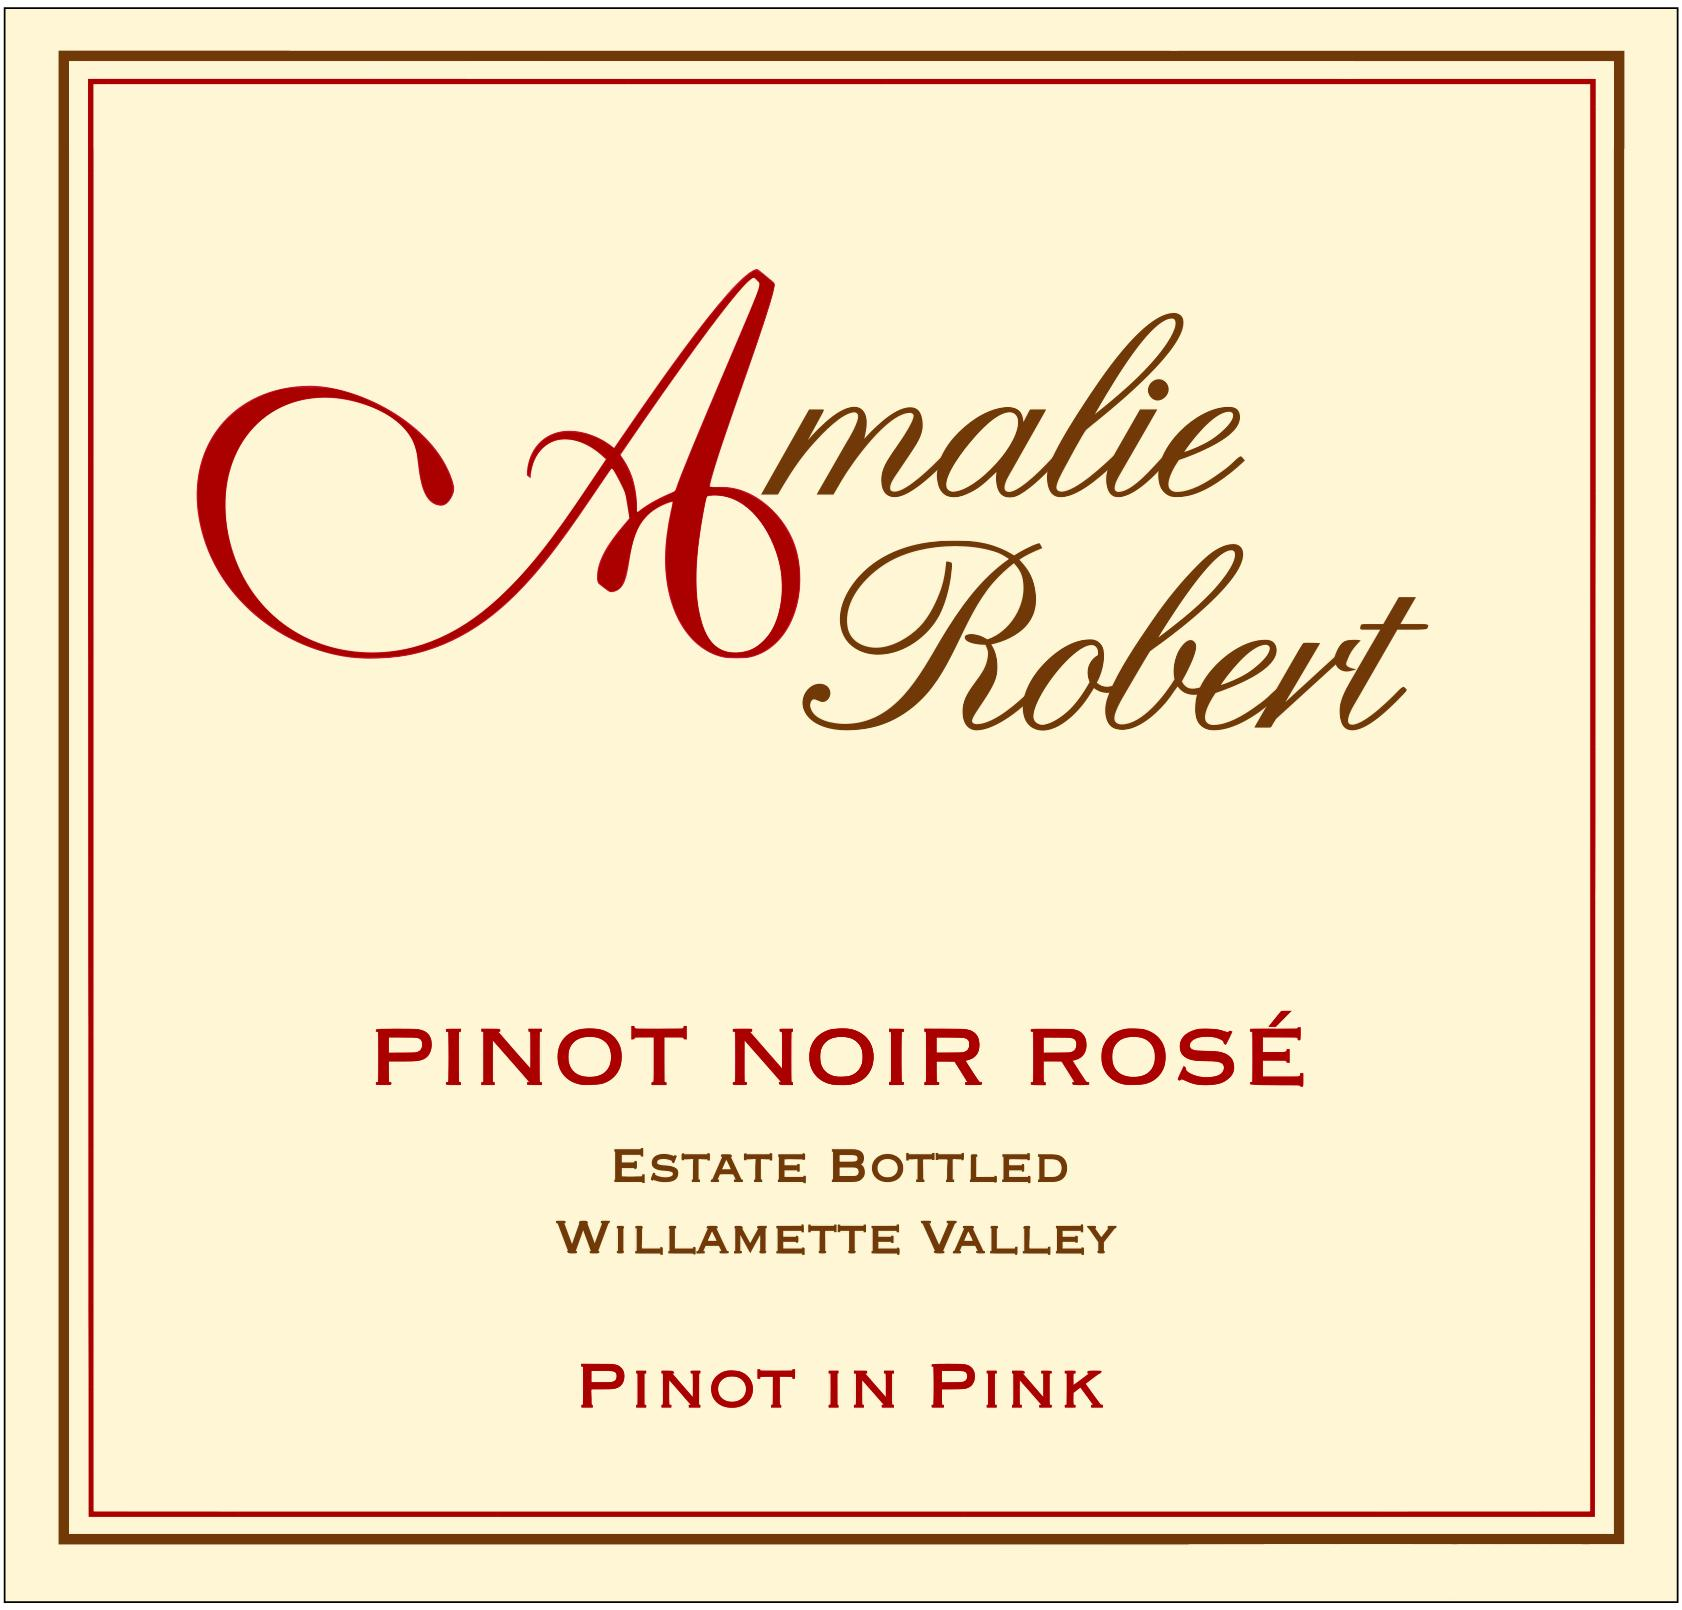 2016 Pinot in Pink - Pinot Noir Rose